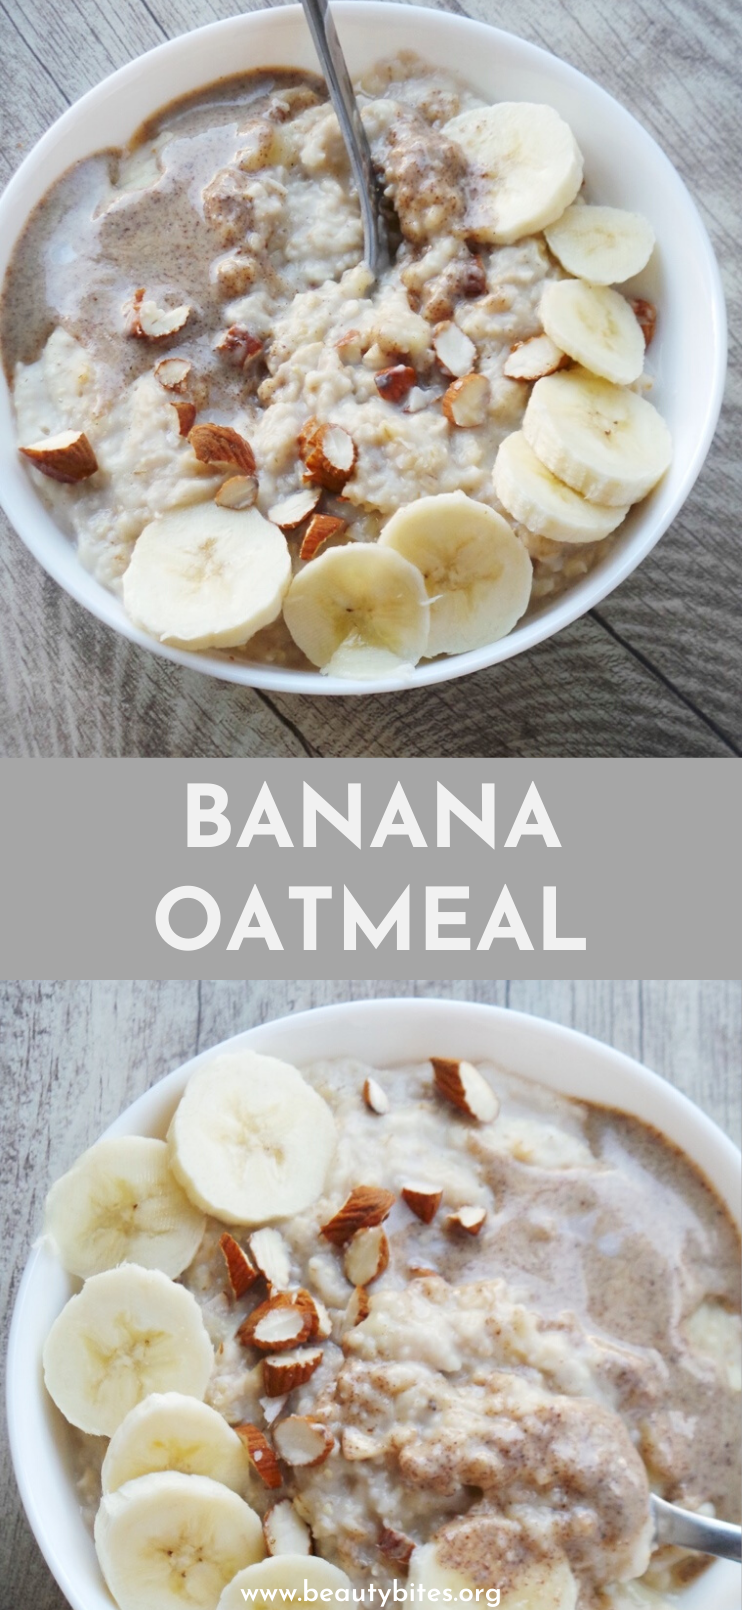 Banana oatmeal recipe with almond butter! Learn how to make oatmeal on the stove with this easy healthy oatmeal recipe - it's very easy and simple and you need about 10 minutes. I kept the toppings quite simple, still, this vegan oatmeal is delicious, filling, satisfying and a perfect healthy breakfast recipe for winter and cold days!